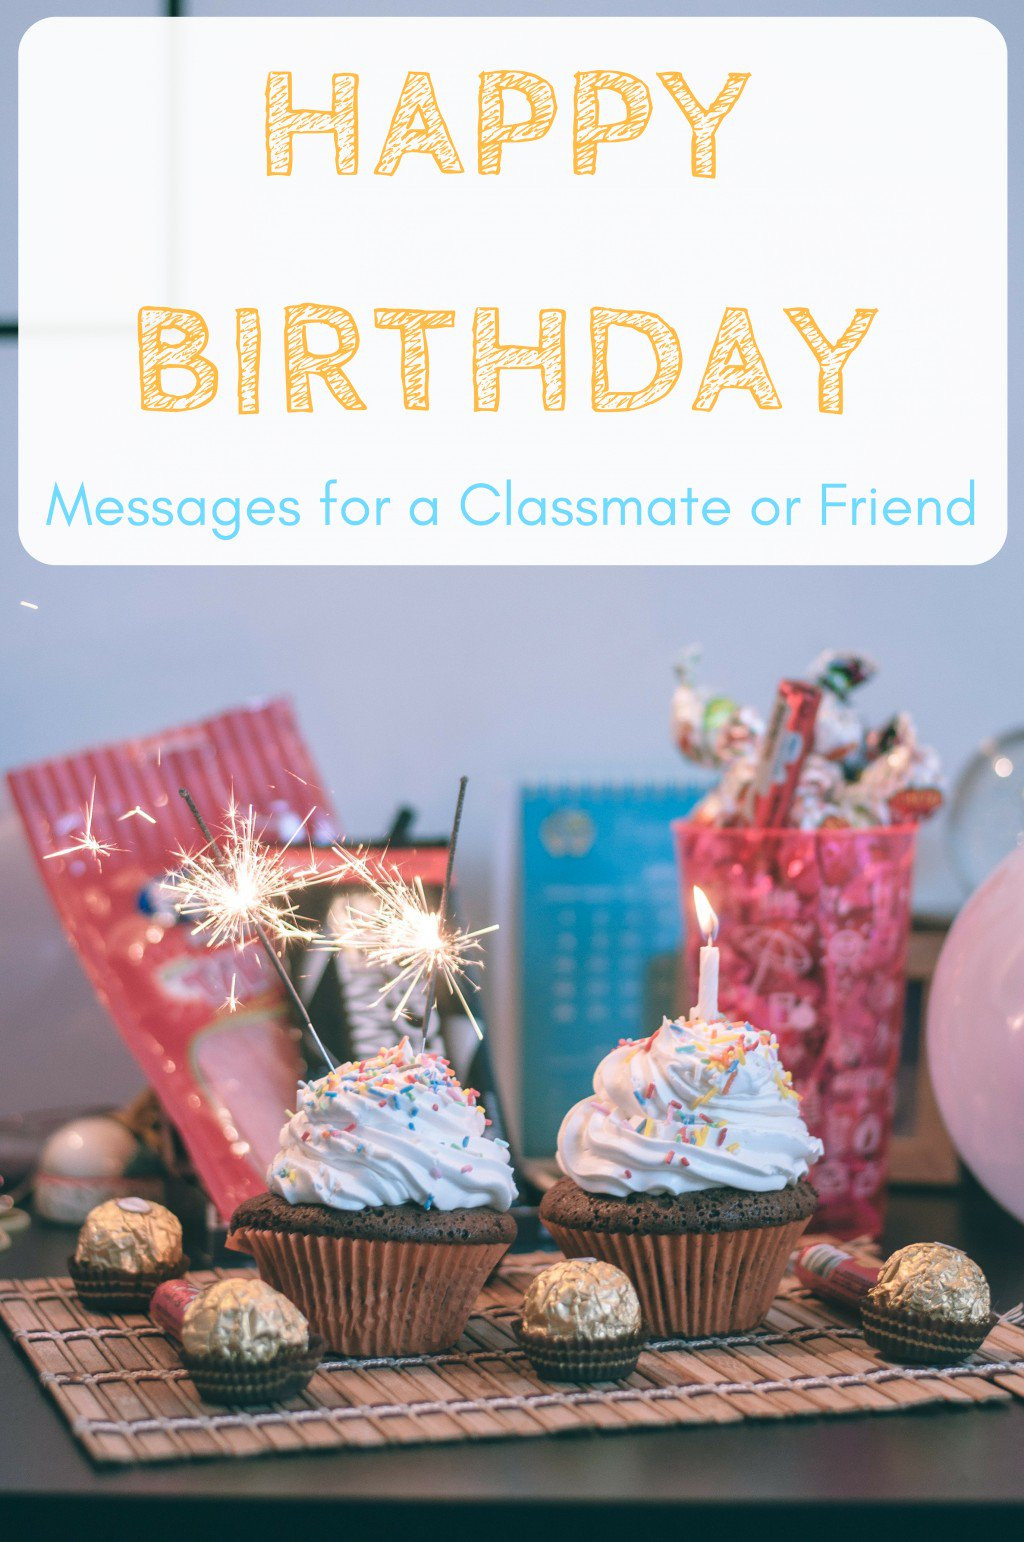 Best ideas about Birthday Card Wishes . Save or Pin Happy Birthday Wishes for a Classmate School Friend or Now.